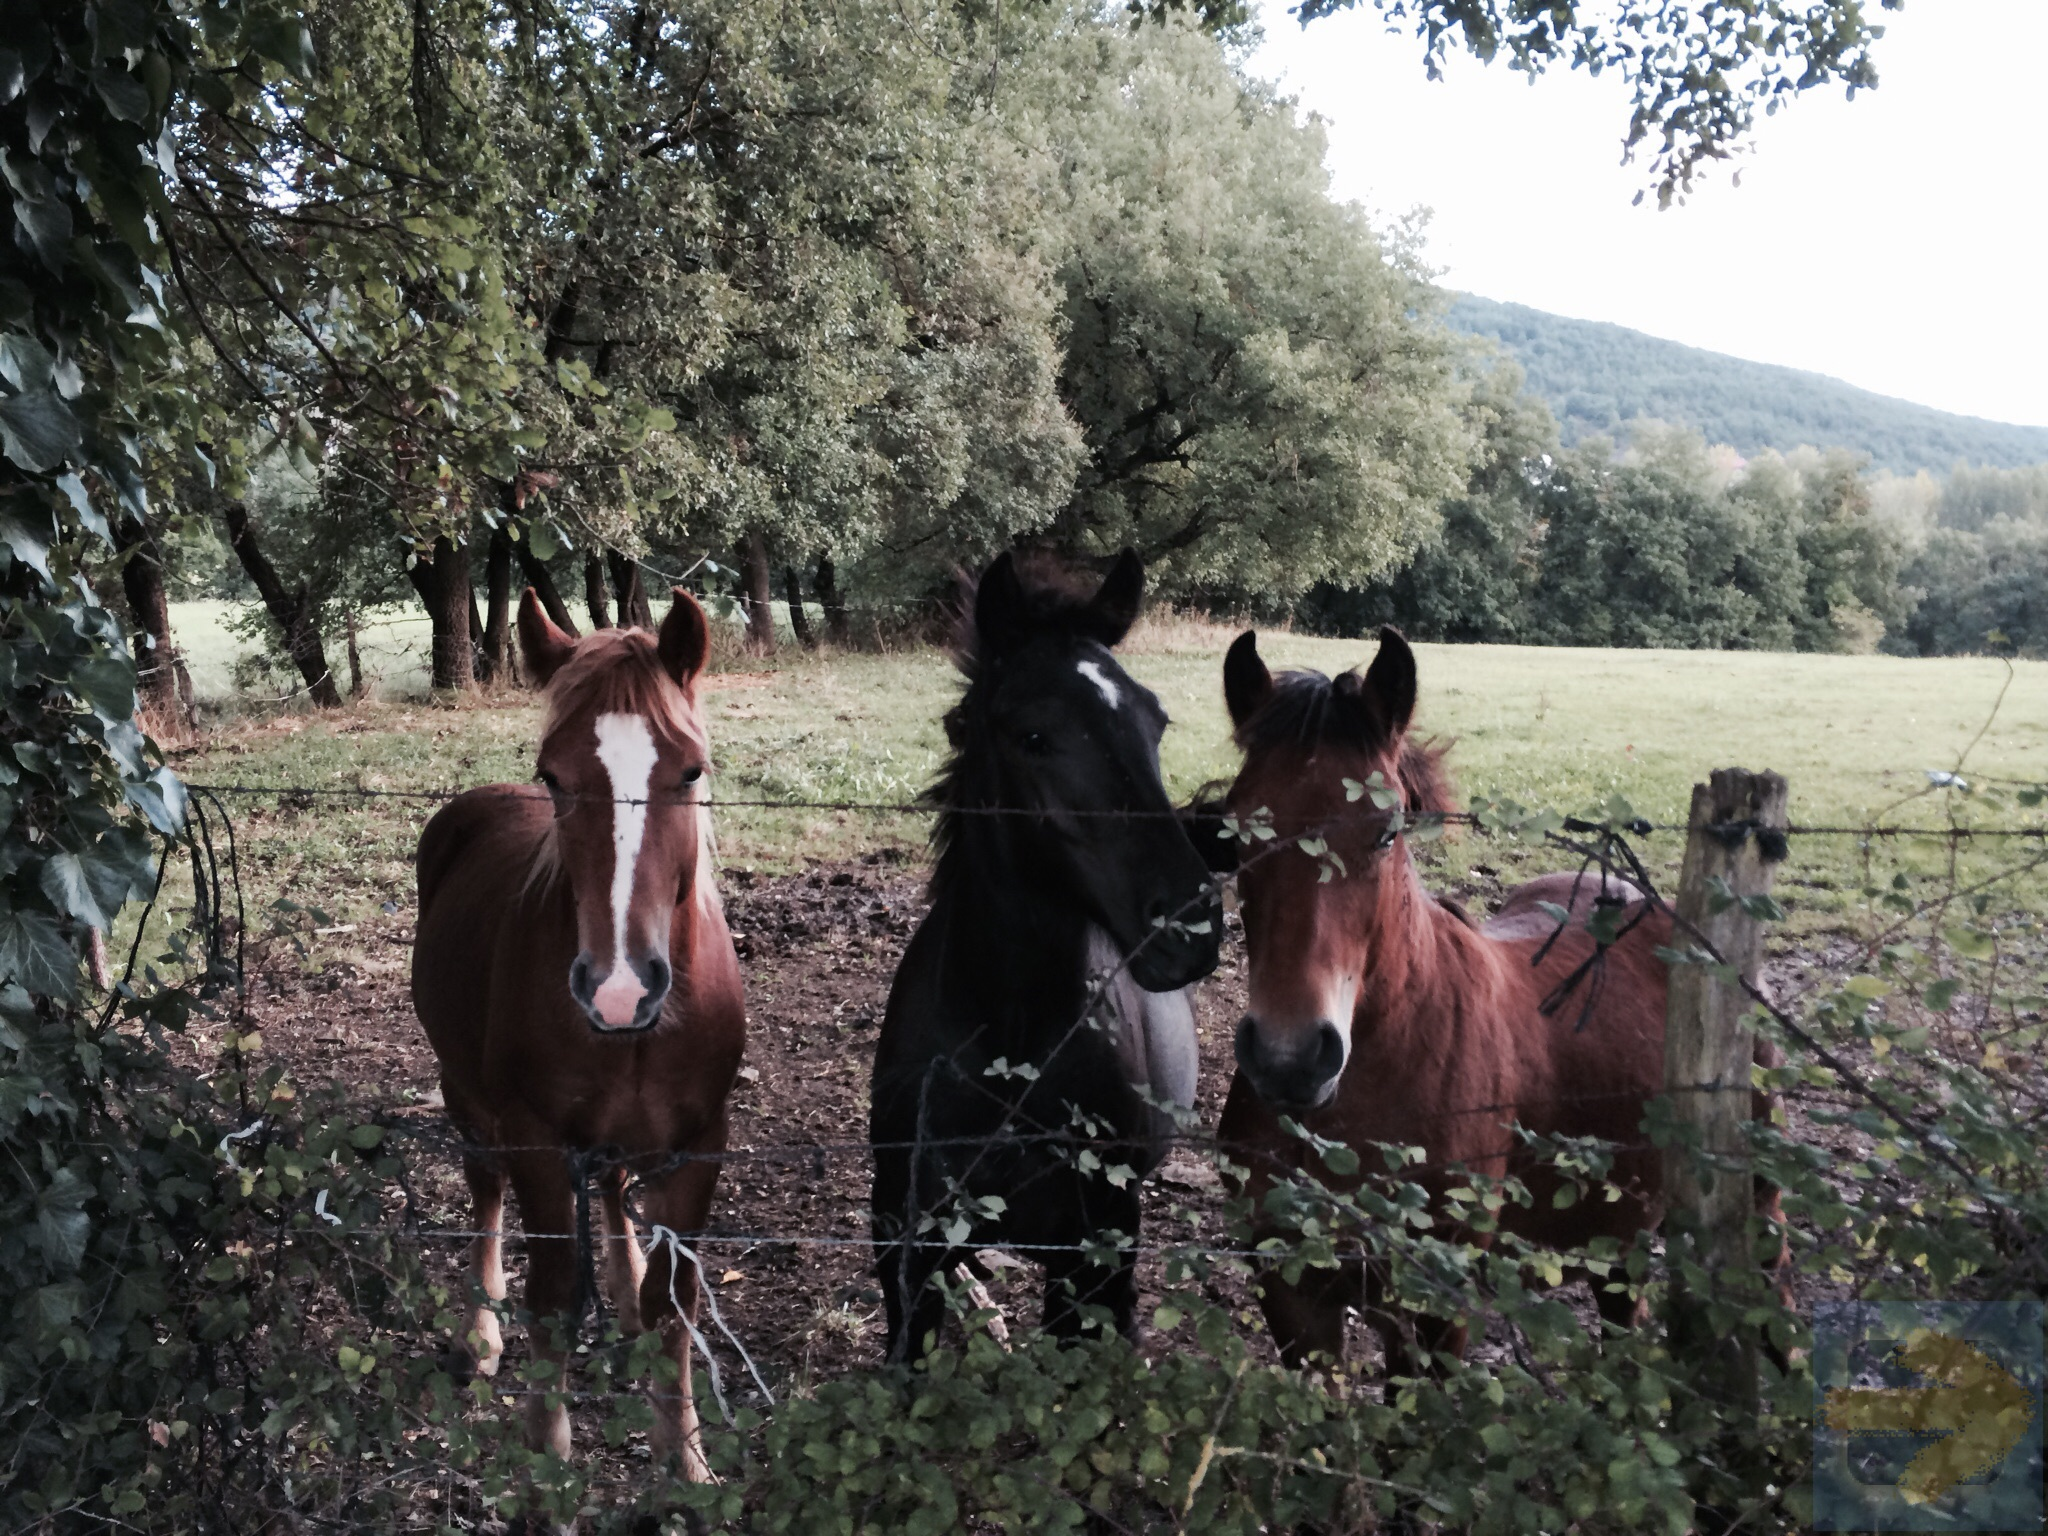 Ponies on the Camino